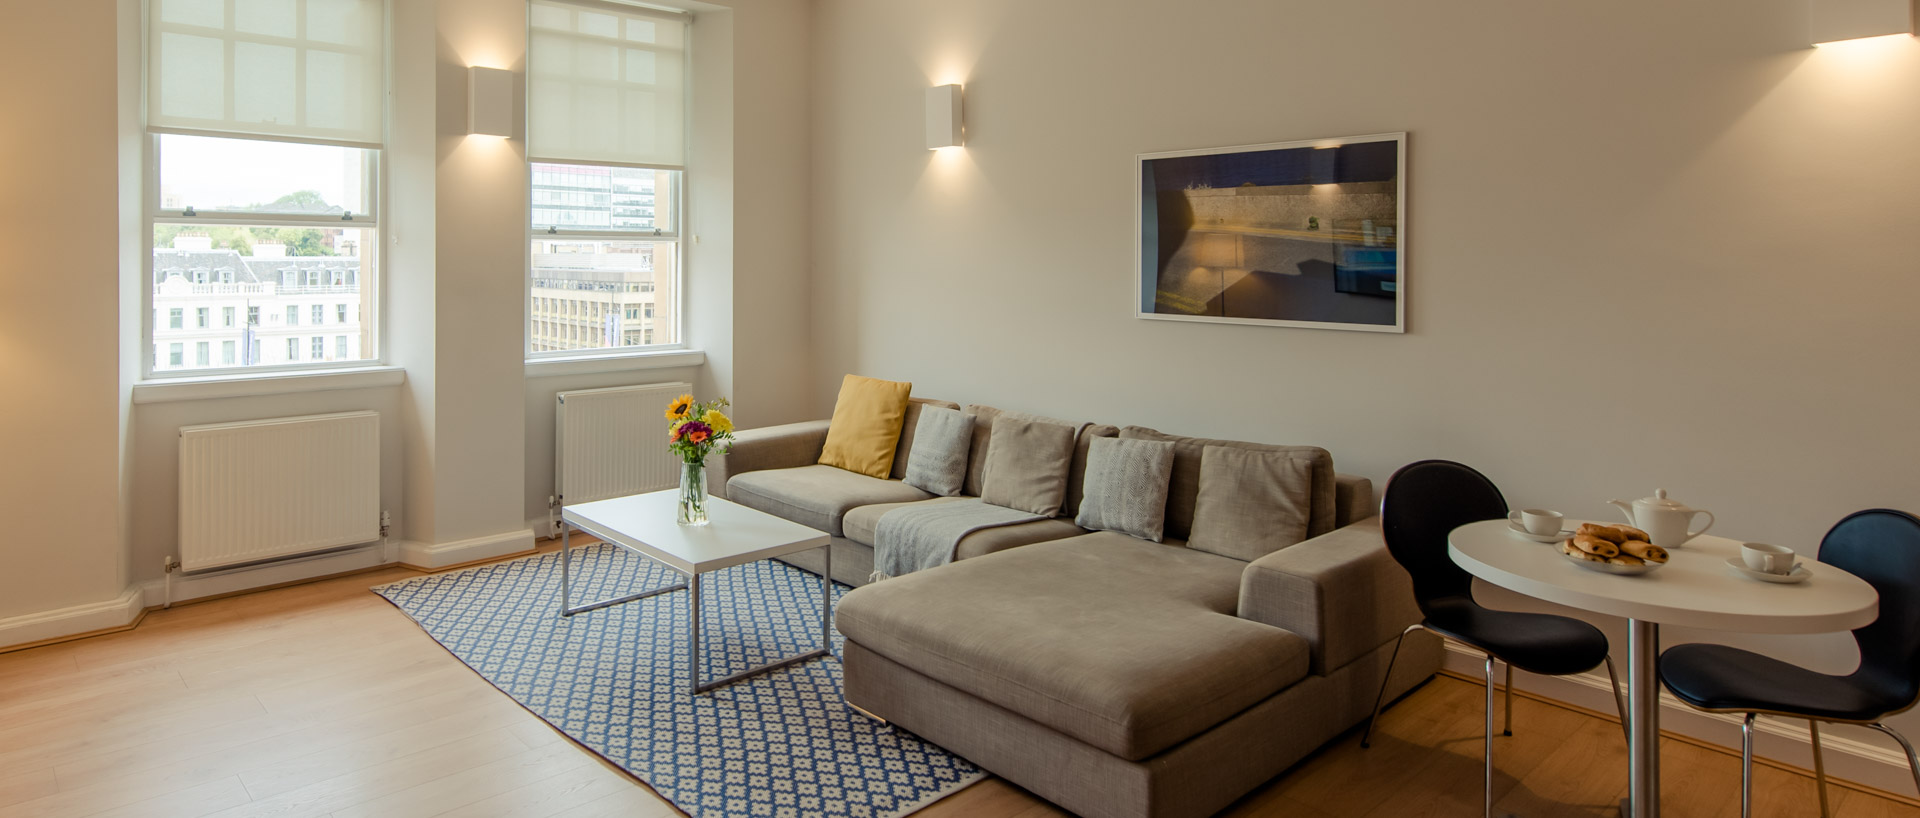 PREMIER SUITES PLUS Glasgow two bedroom serviced apartment